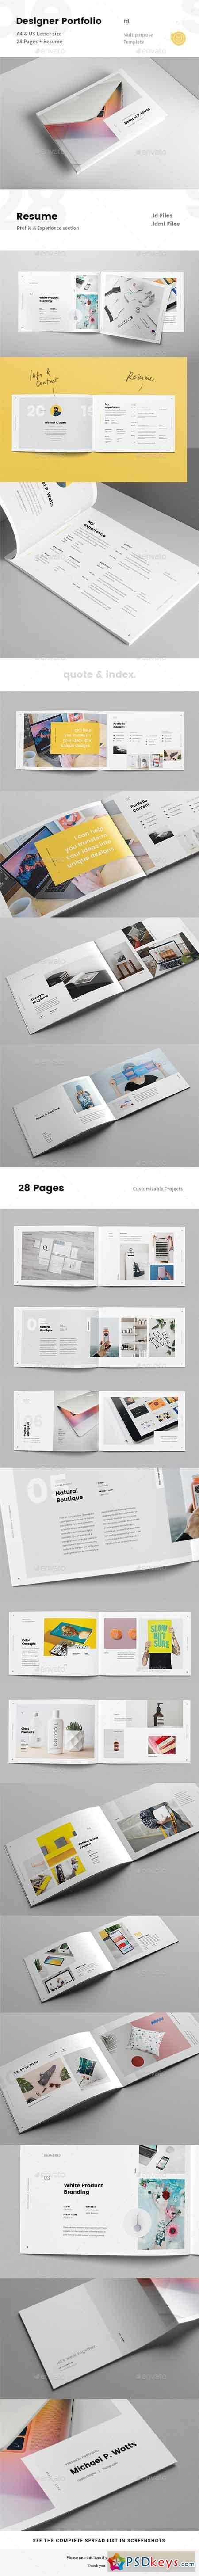 Landscape Creative Portfolio for Designers with Resume 23021146